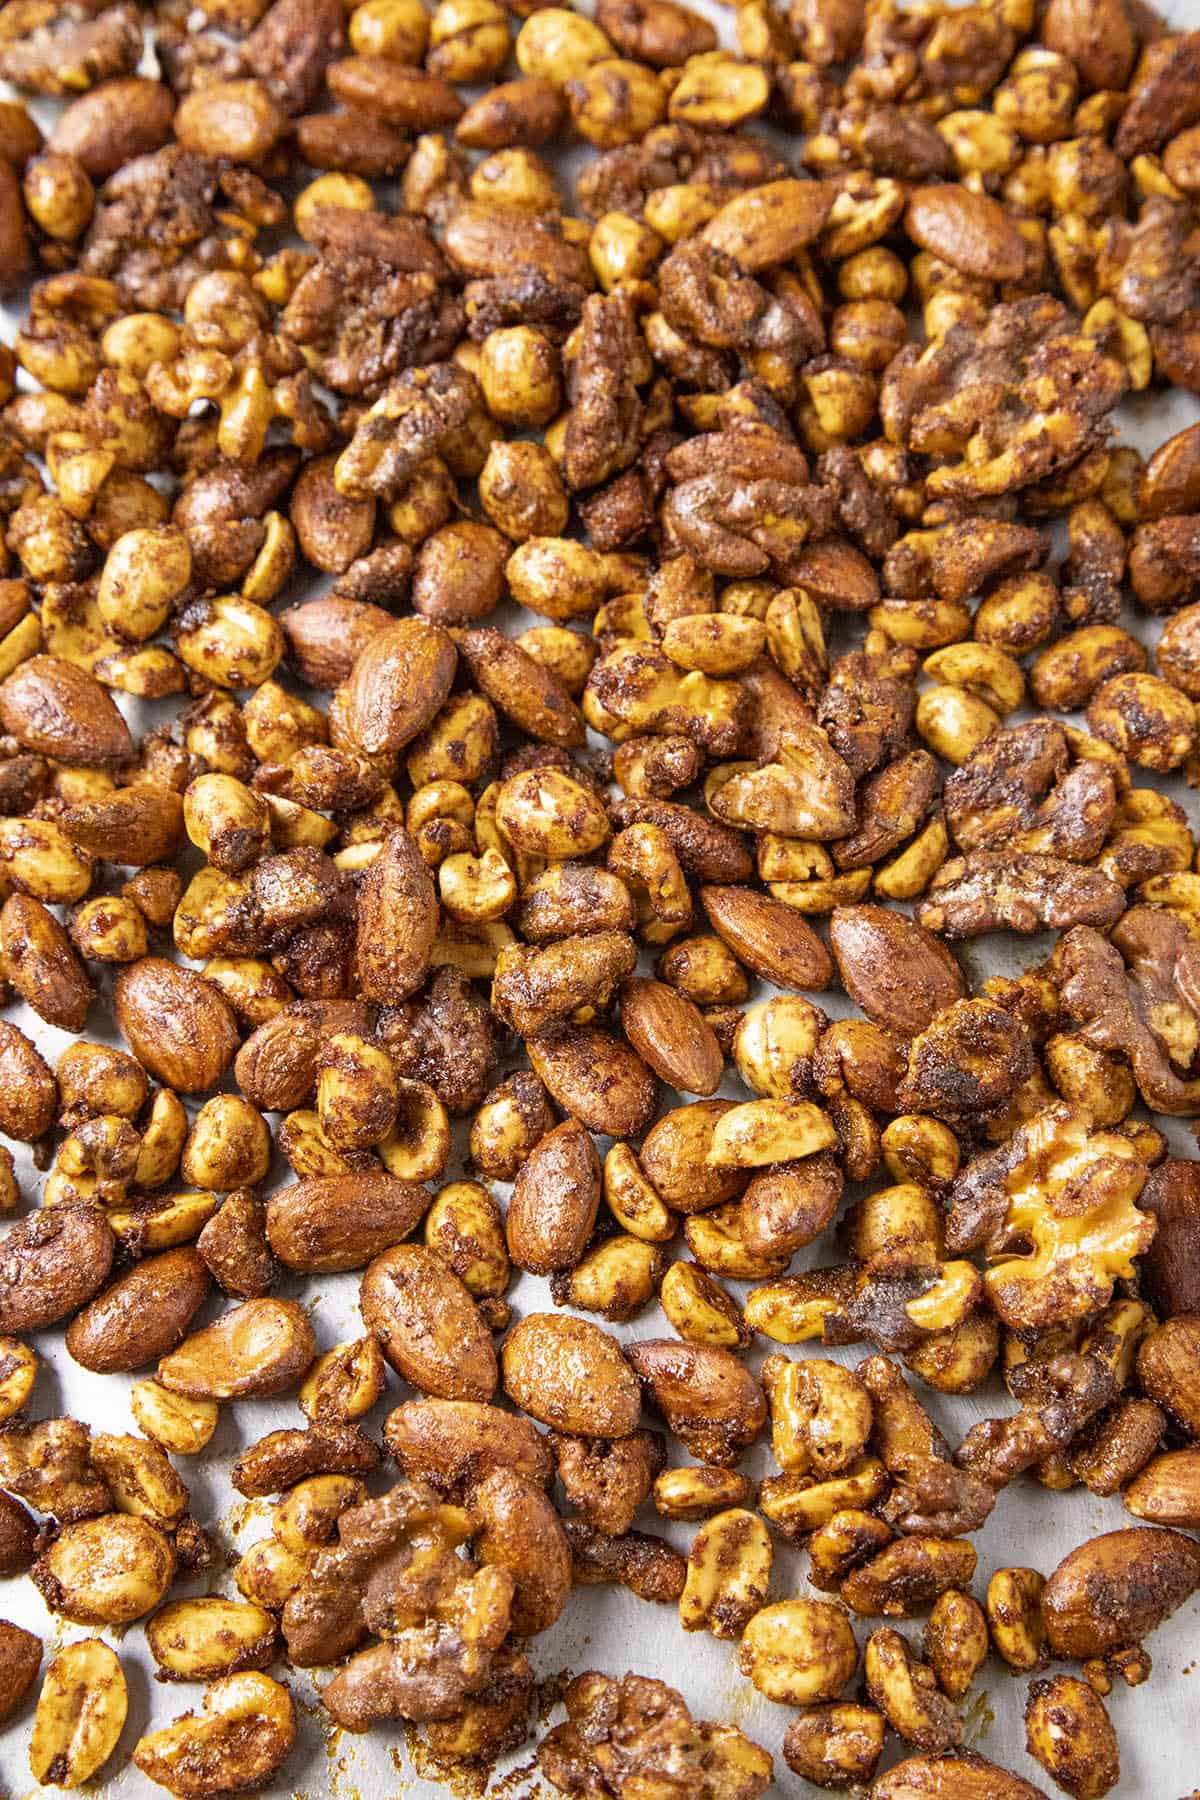 Spiced Nuts just out of the oven